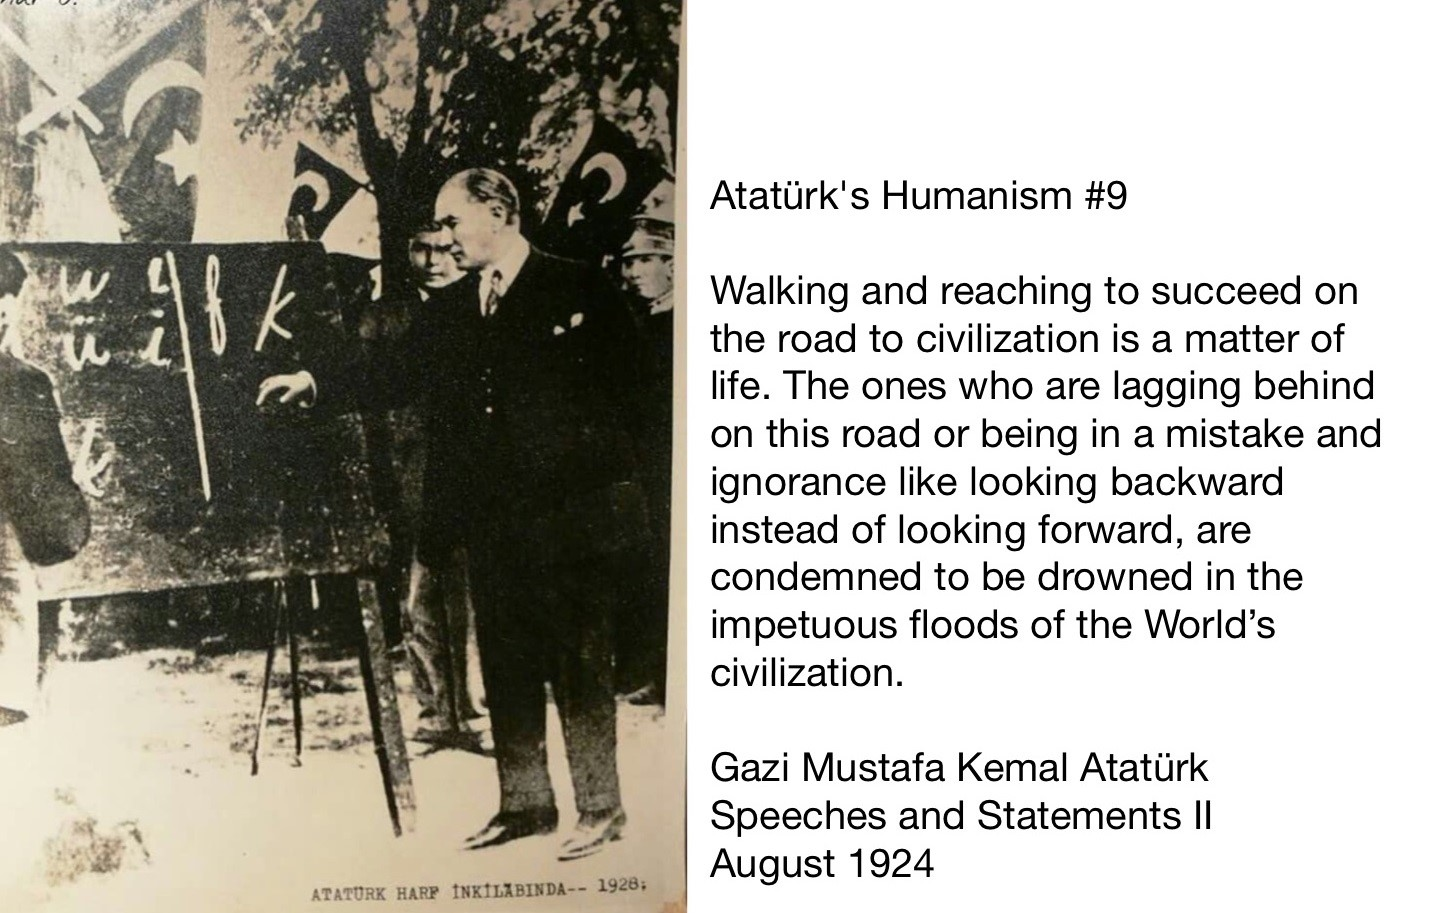 speech ataturk